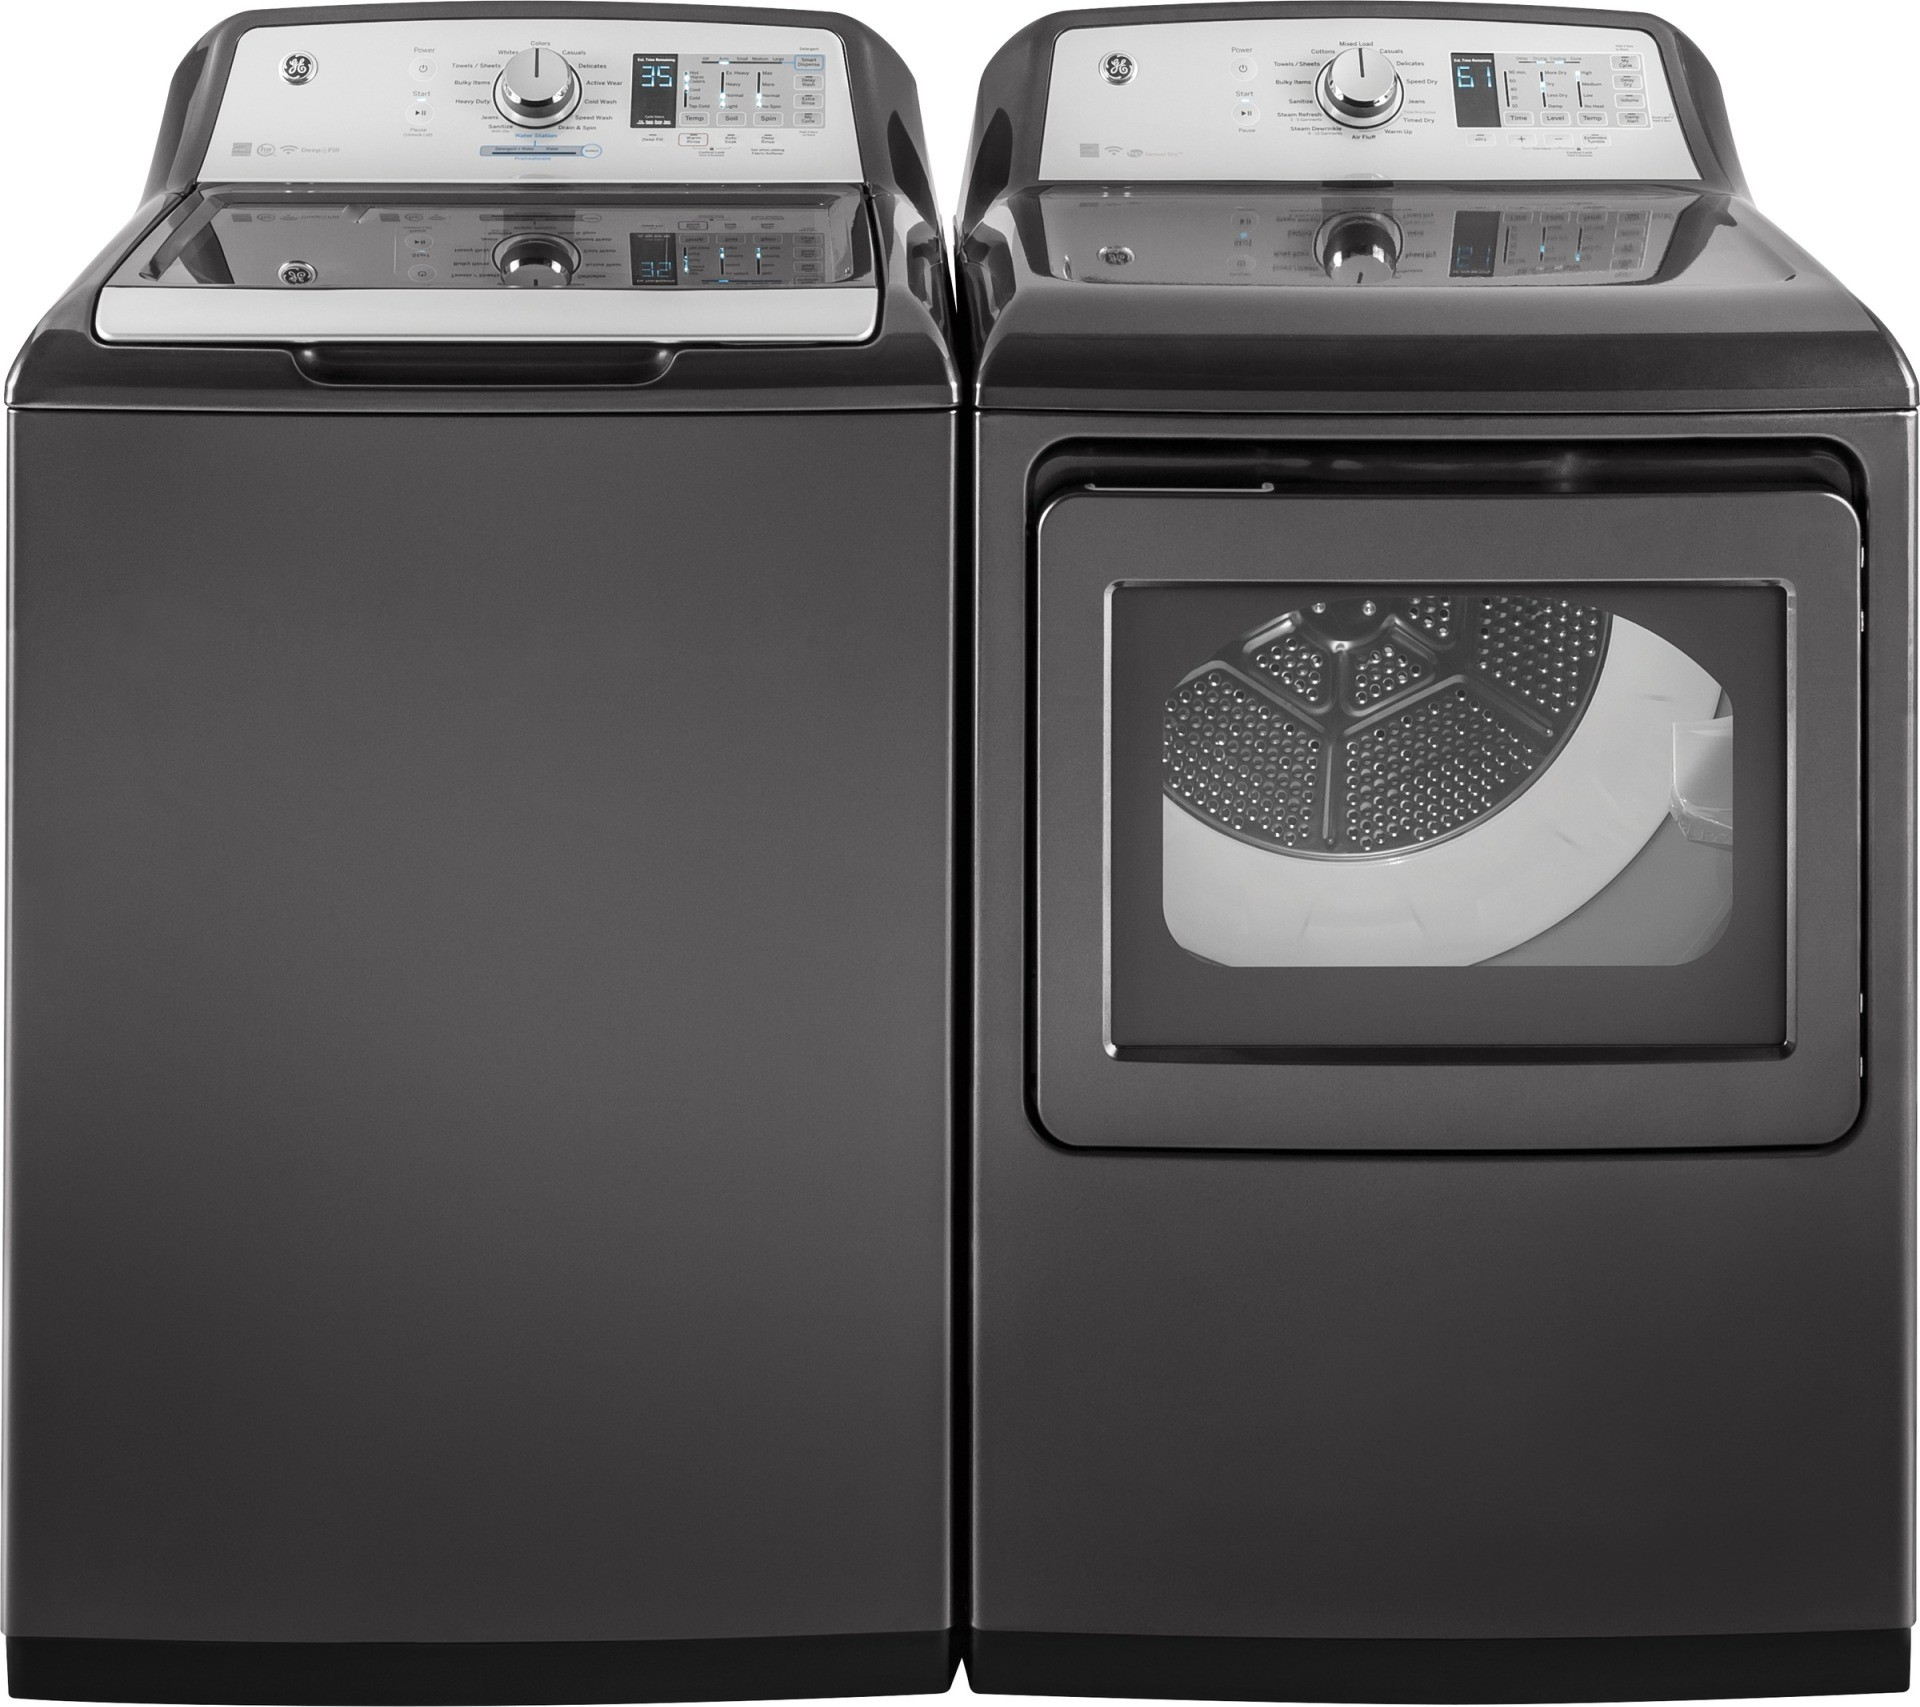 Gtw750cpldg 27 Quot Top Load Washer With Smart Dispense